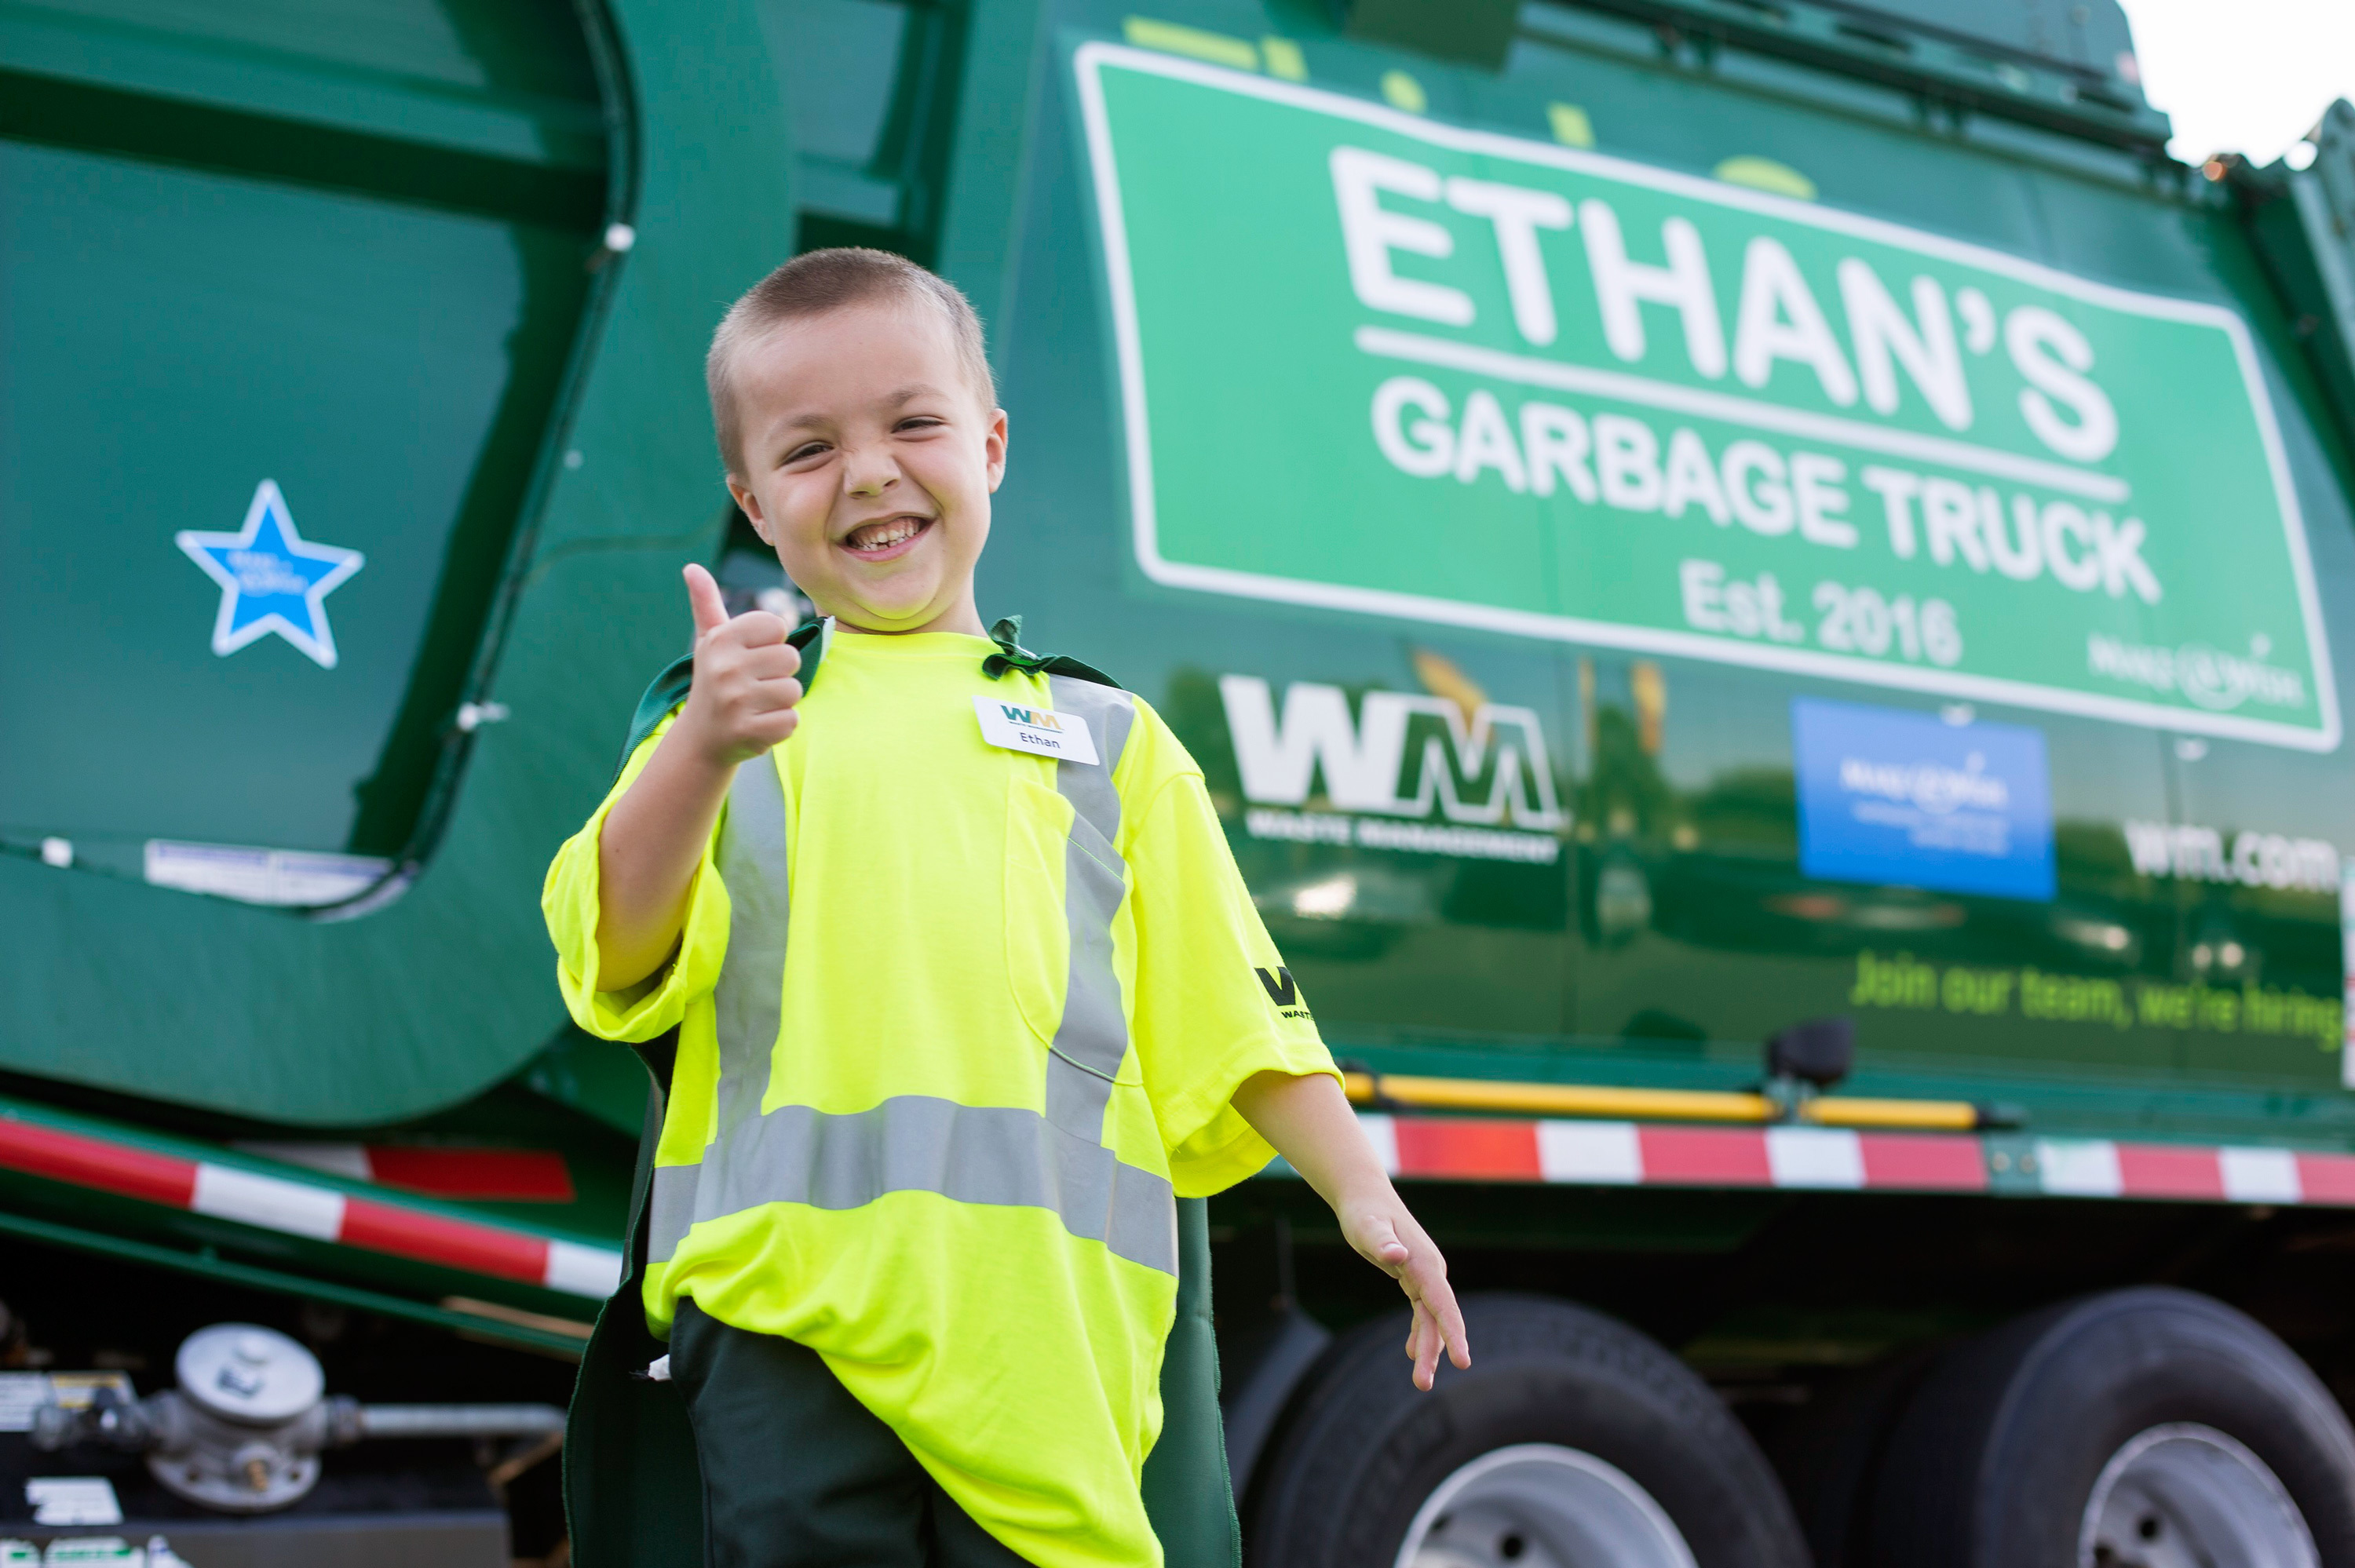 Ethan Dean, a 6-year-old boy with cystic fibrosis, rode in a garbage truck in Sacramento on Tuesday as part of an event organized by the Make-a-Wish Foundation and local sponsors.